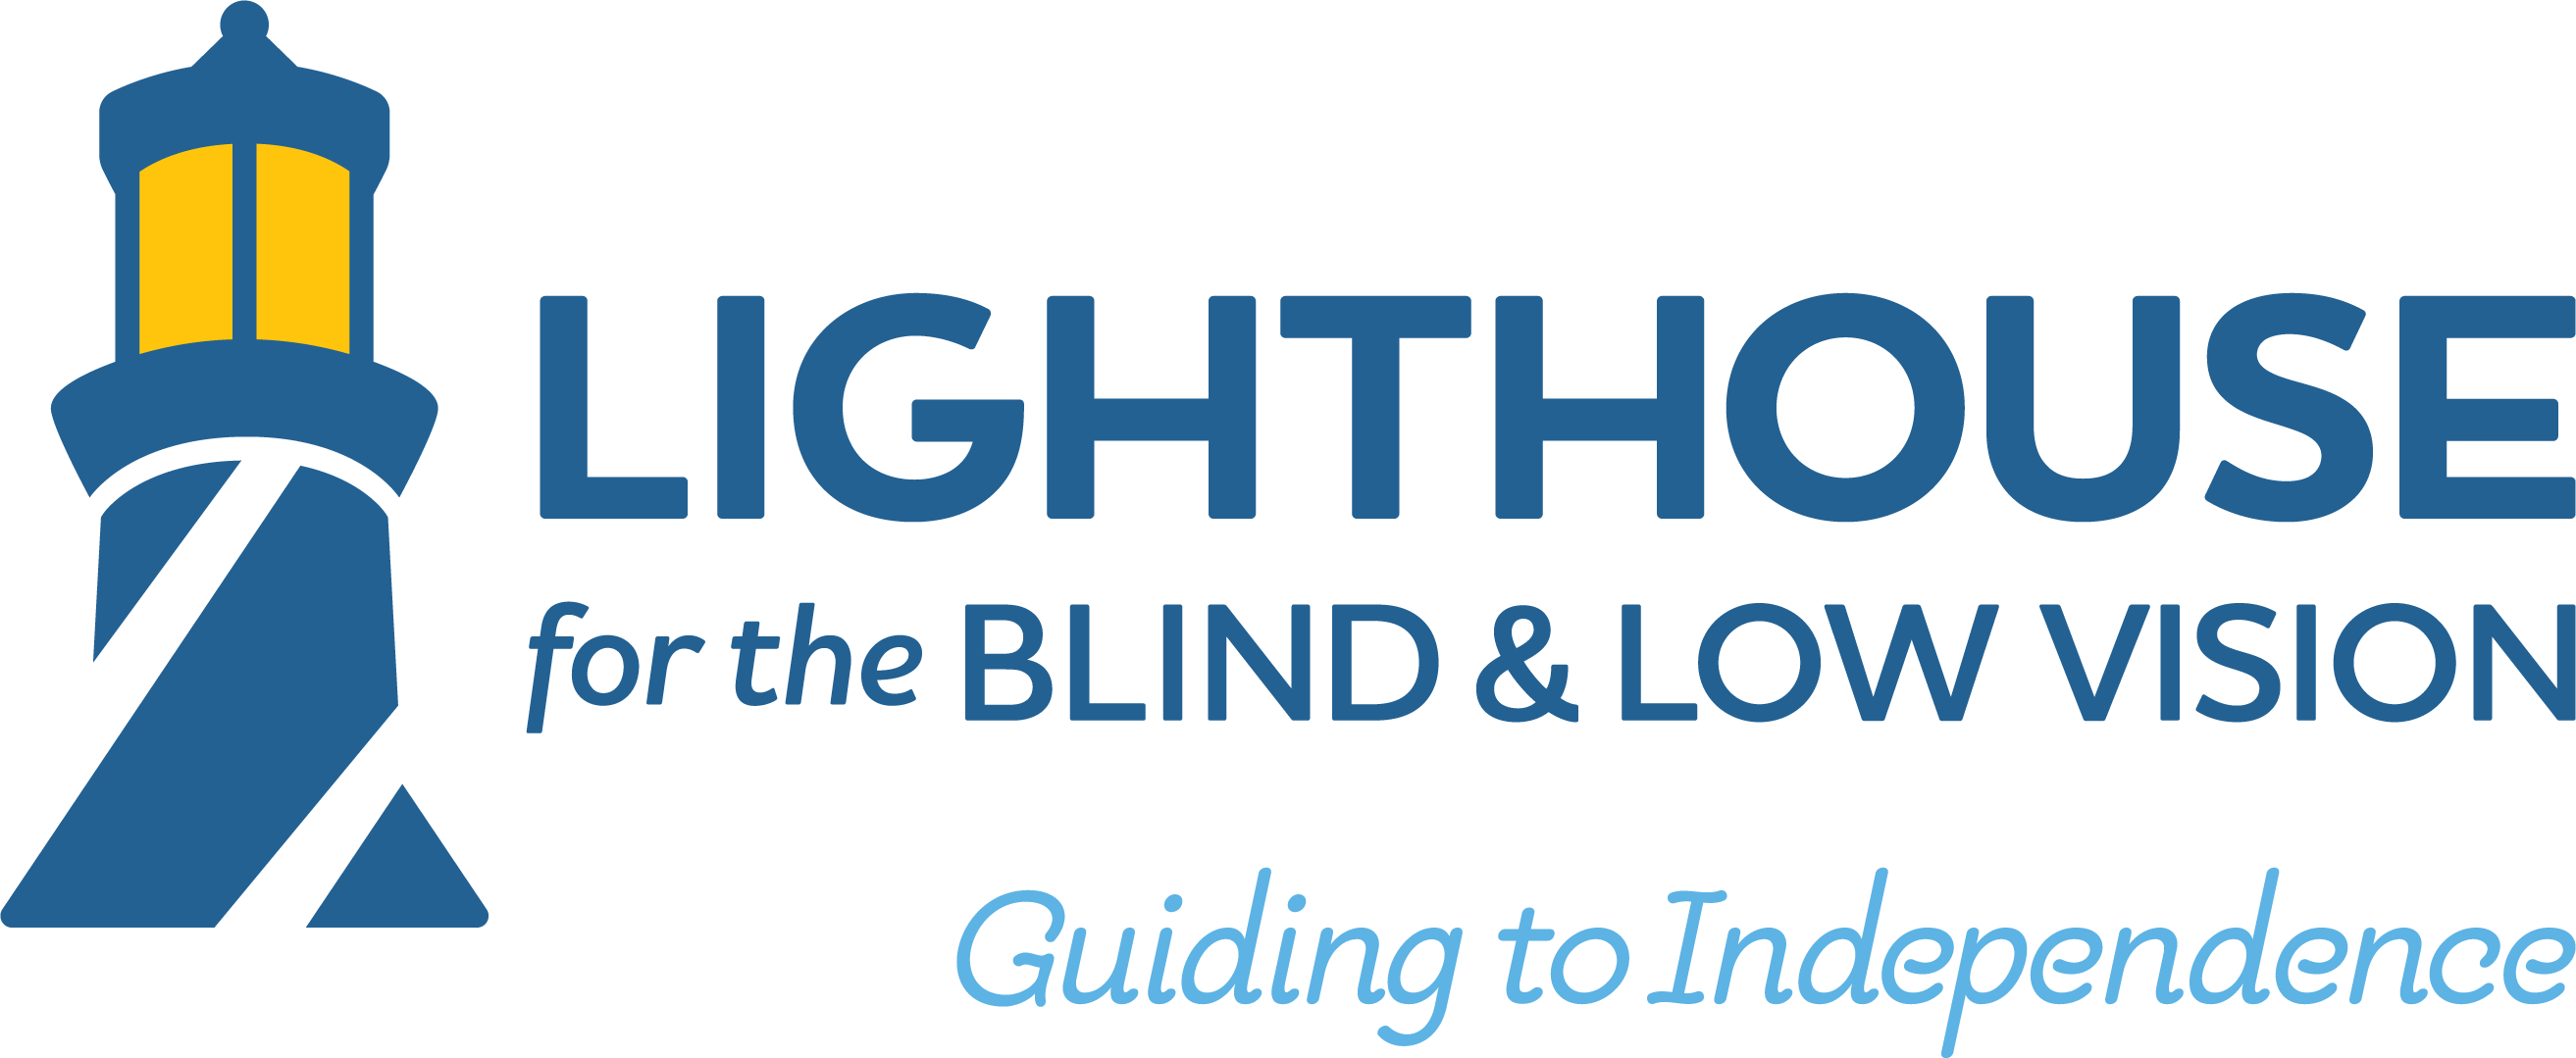 Lighthouse for the Blind and Low Vision logo